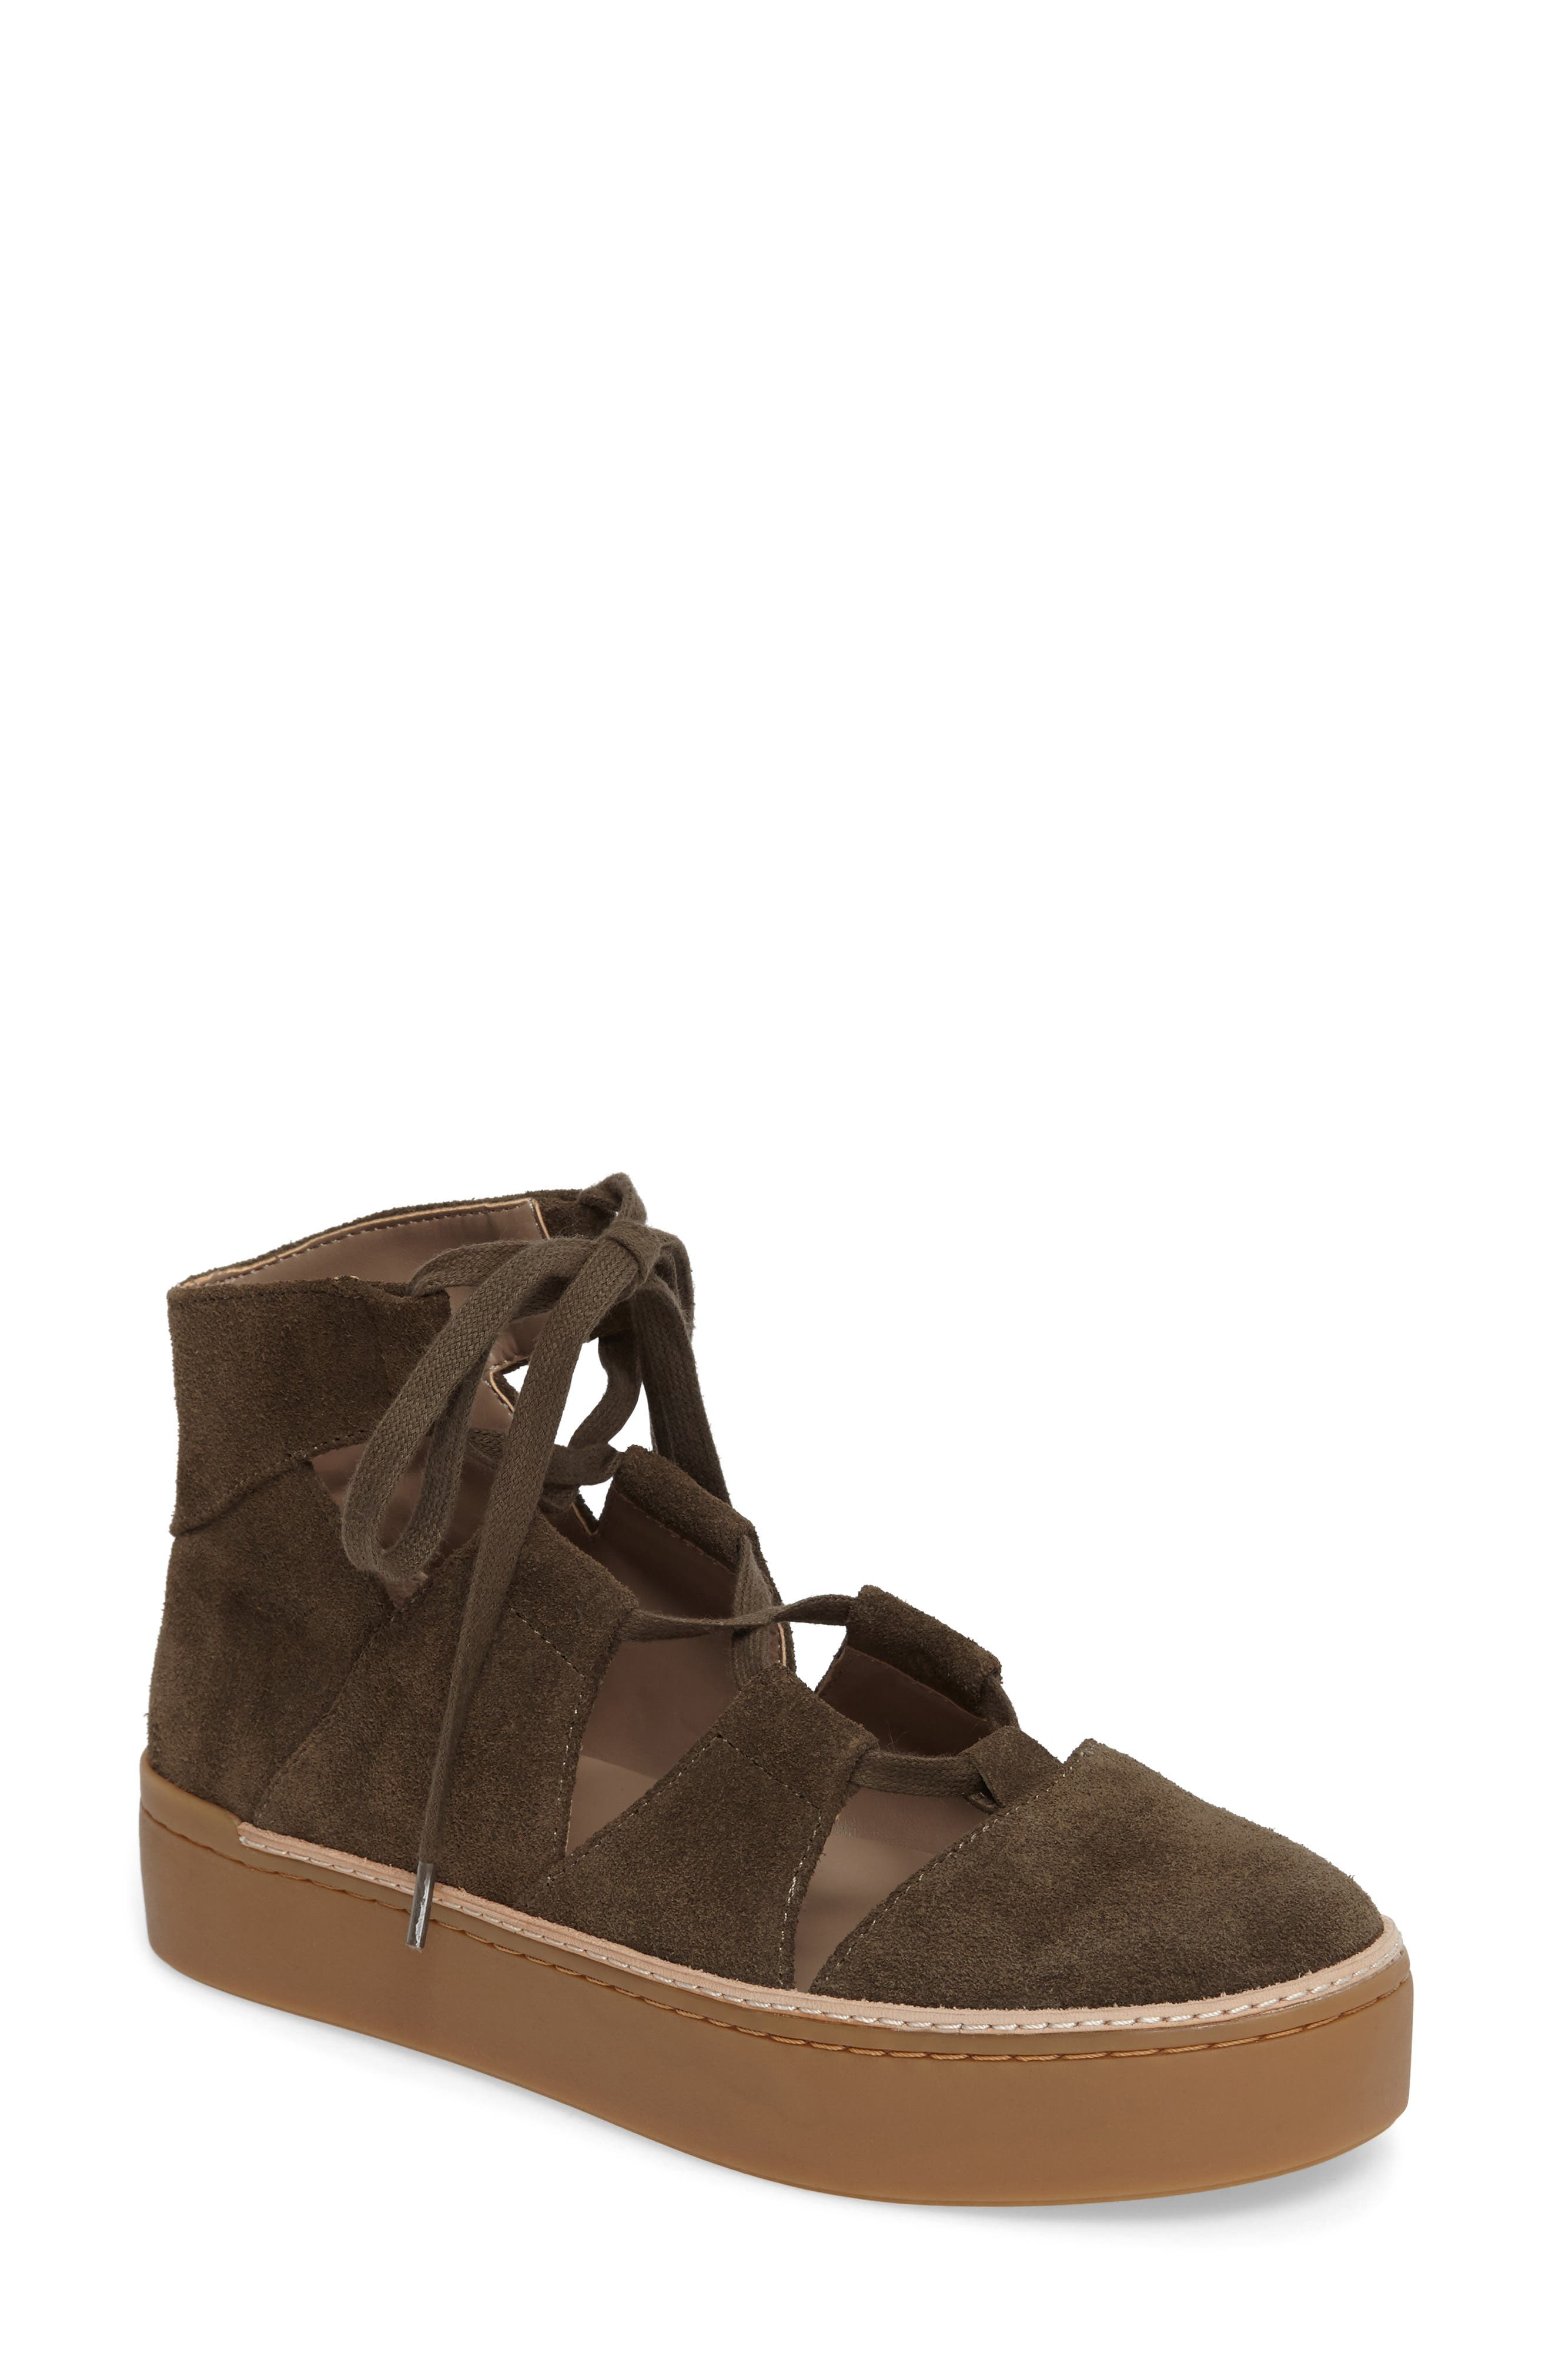 M4D3 Savanah Ghillie Platform Sneaker,                             Main thumbnail 1, color,                             DEEP TAUPE LEATHER